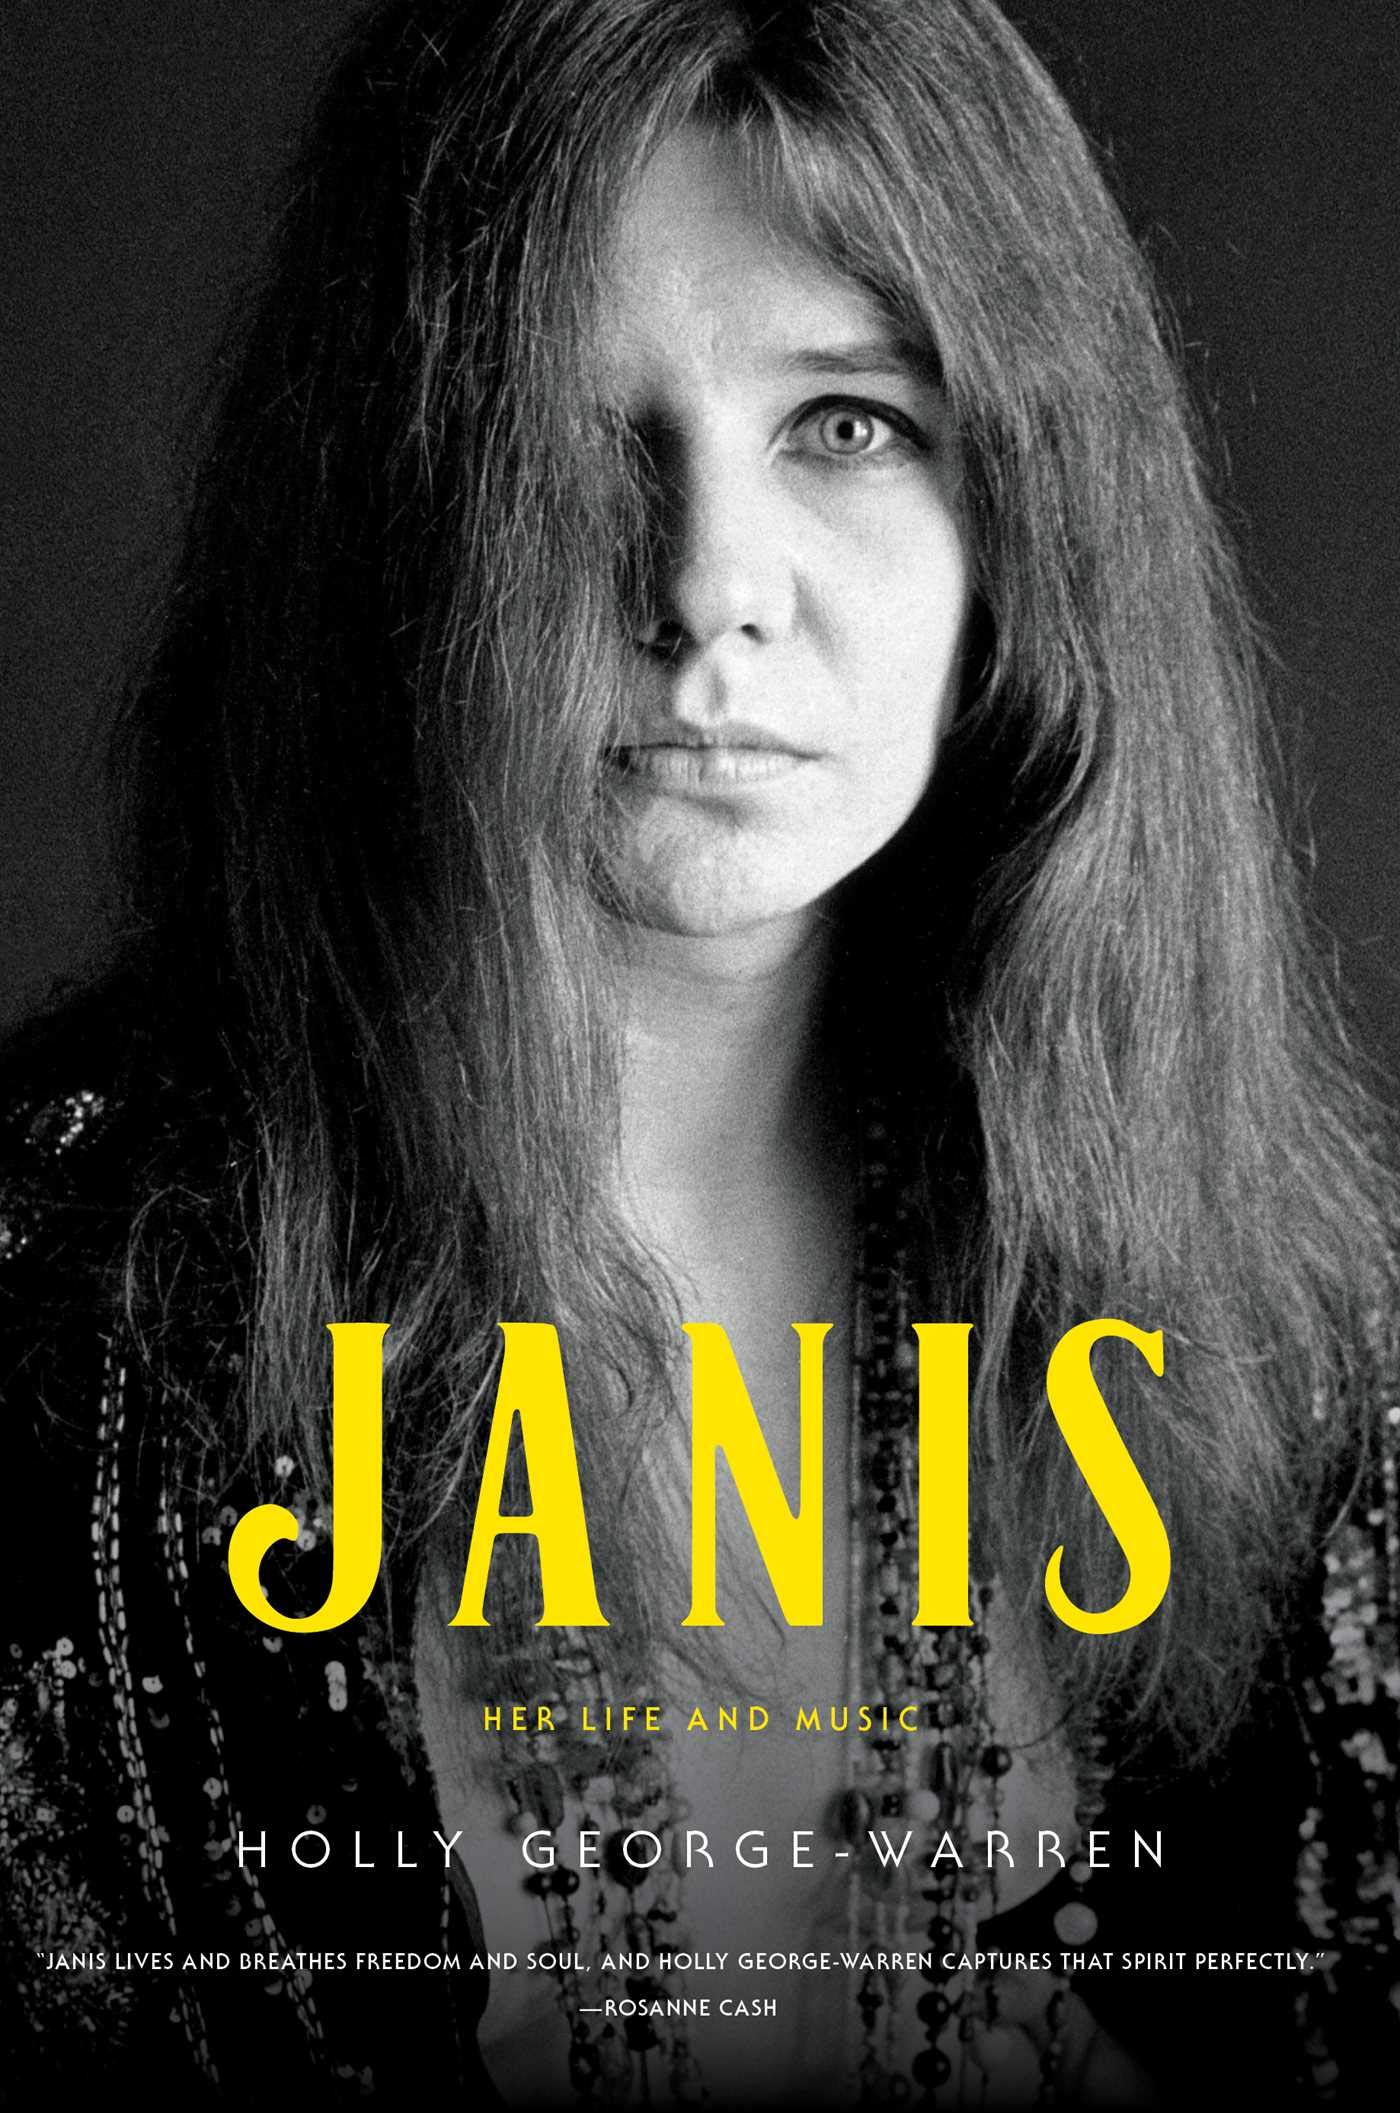 Caption: Janis: Her Life And Music by Holly George-Warren